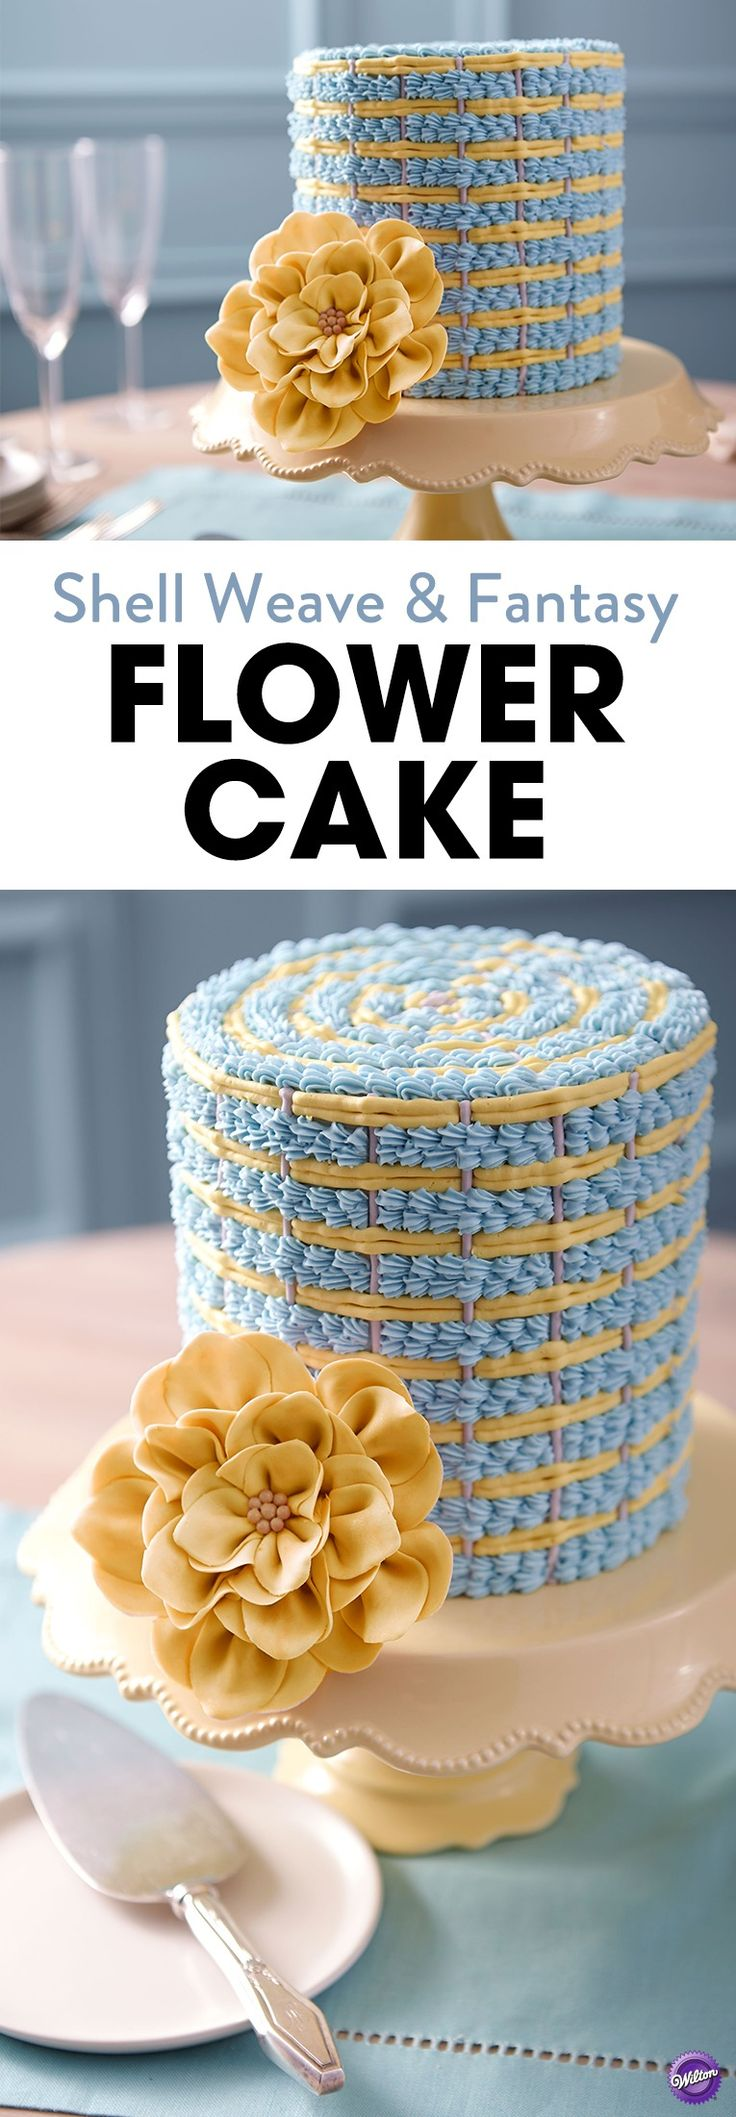 Impress mom on Mother's Day with this Shell Weave and Fantasy Flower Cake! This cake features icy blue shells threading their way through bands of yellow and gray. A lush fantasy flower provides a beautiful finishing touch.